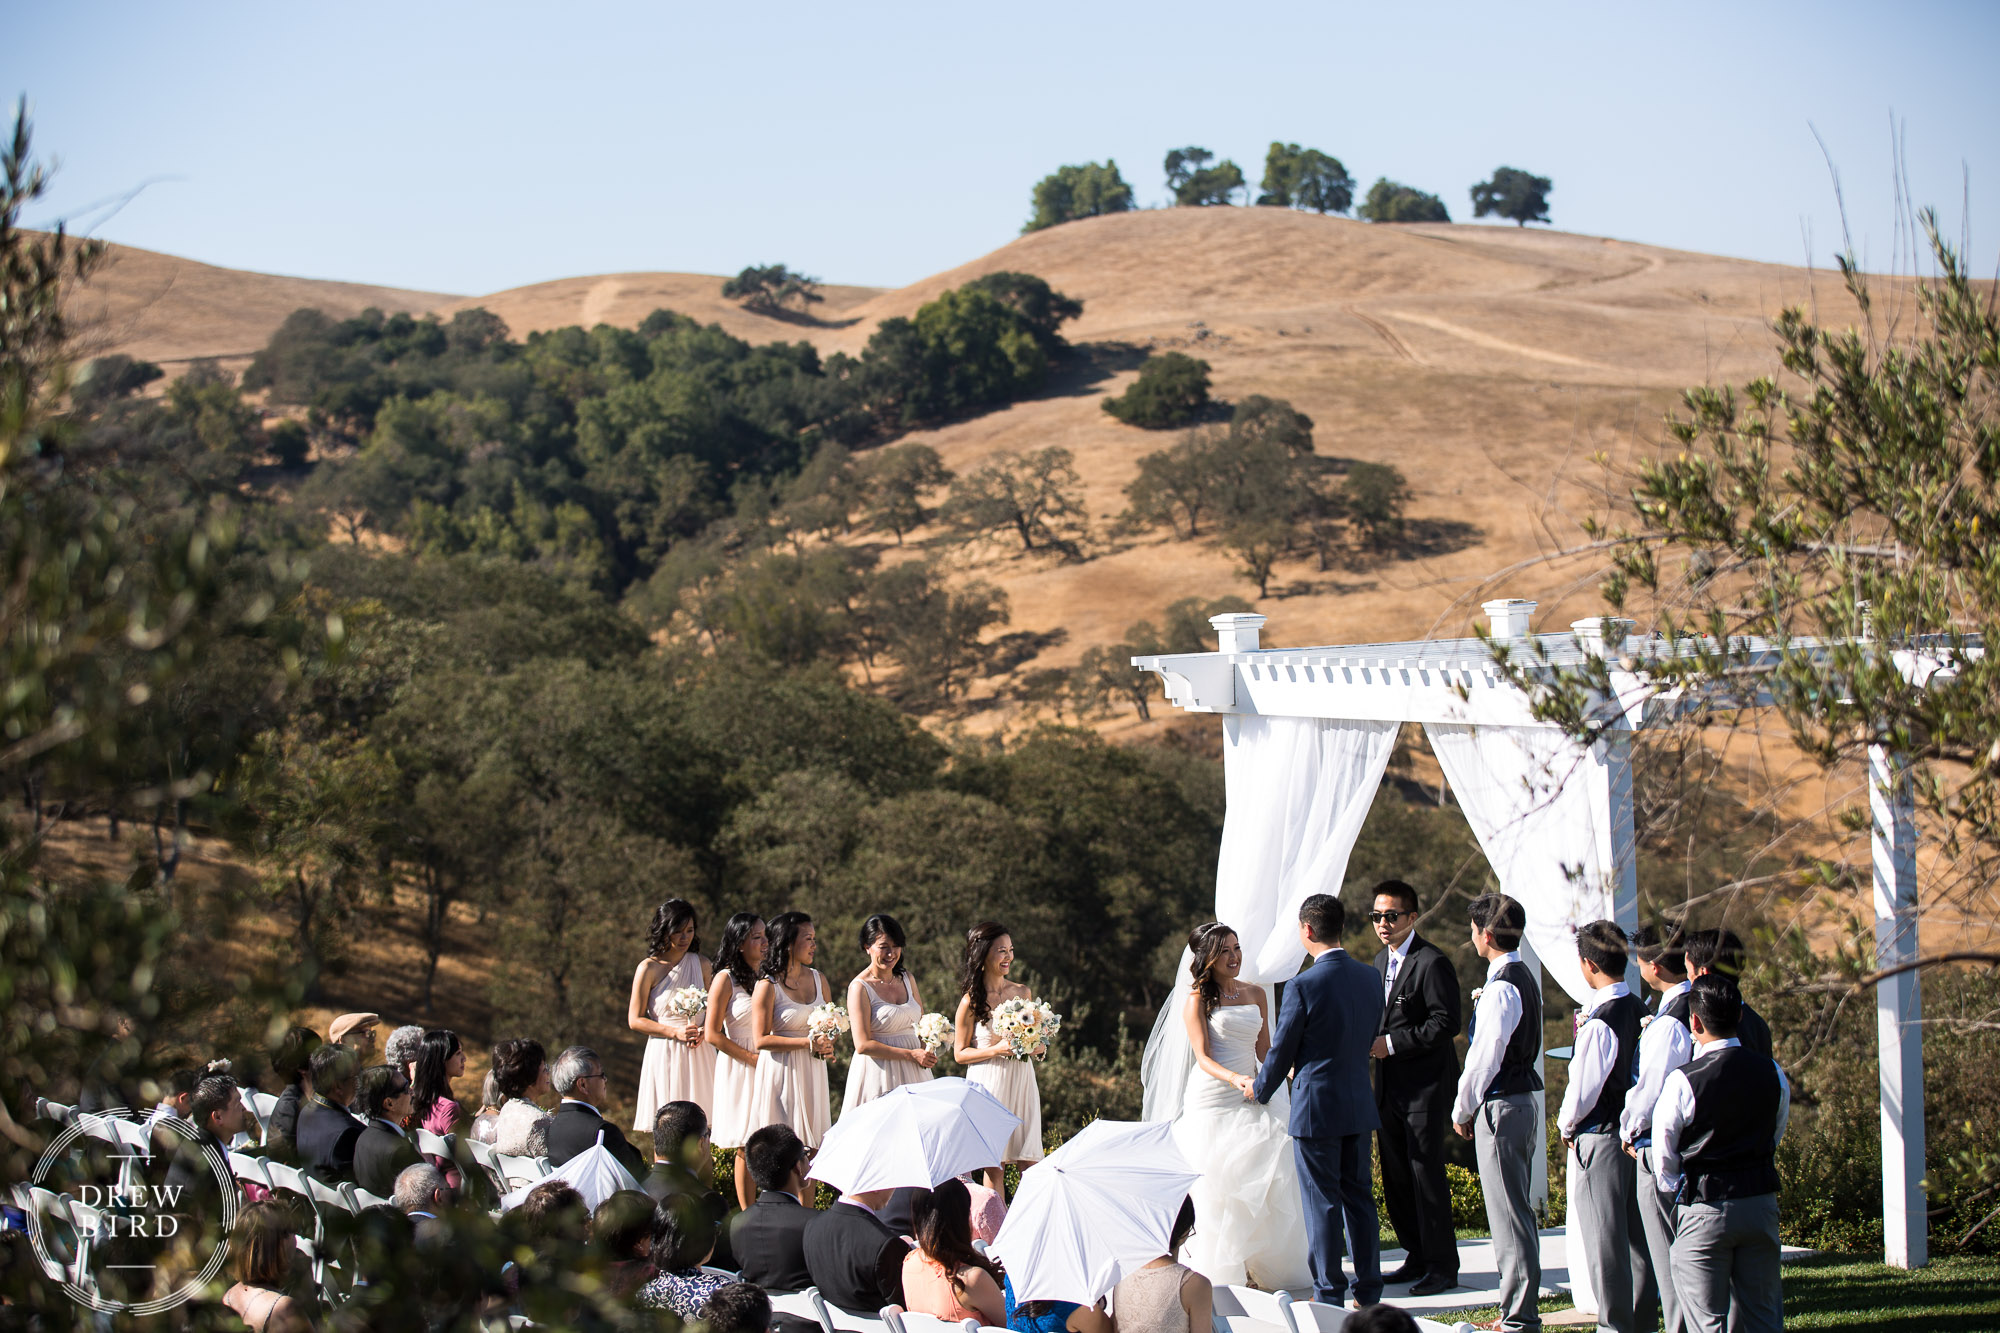 Bride and groom and wedding party during ceremony at outdoor wedding at Willow Heights Mansion. California rolling hills in the background. San Jose bay area wedding and photographer for chinese weddings Drew Bird.